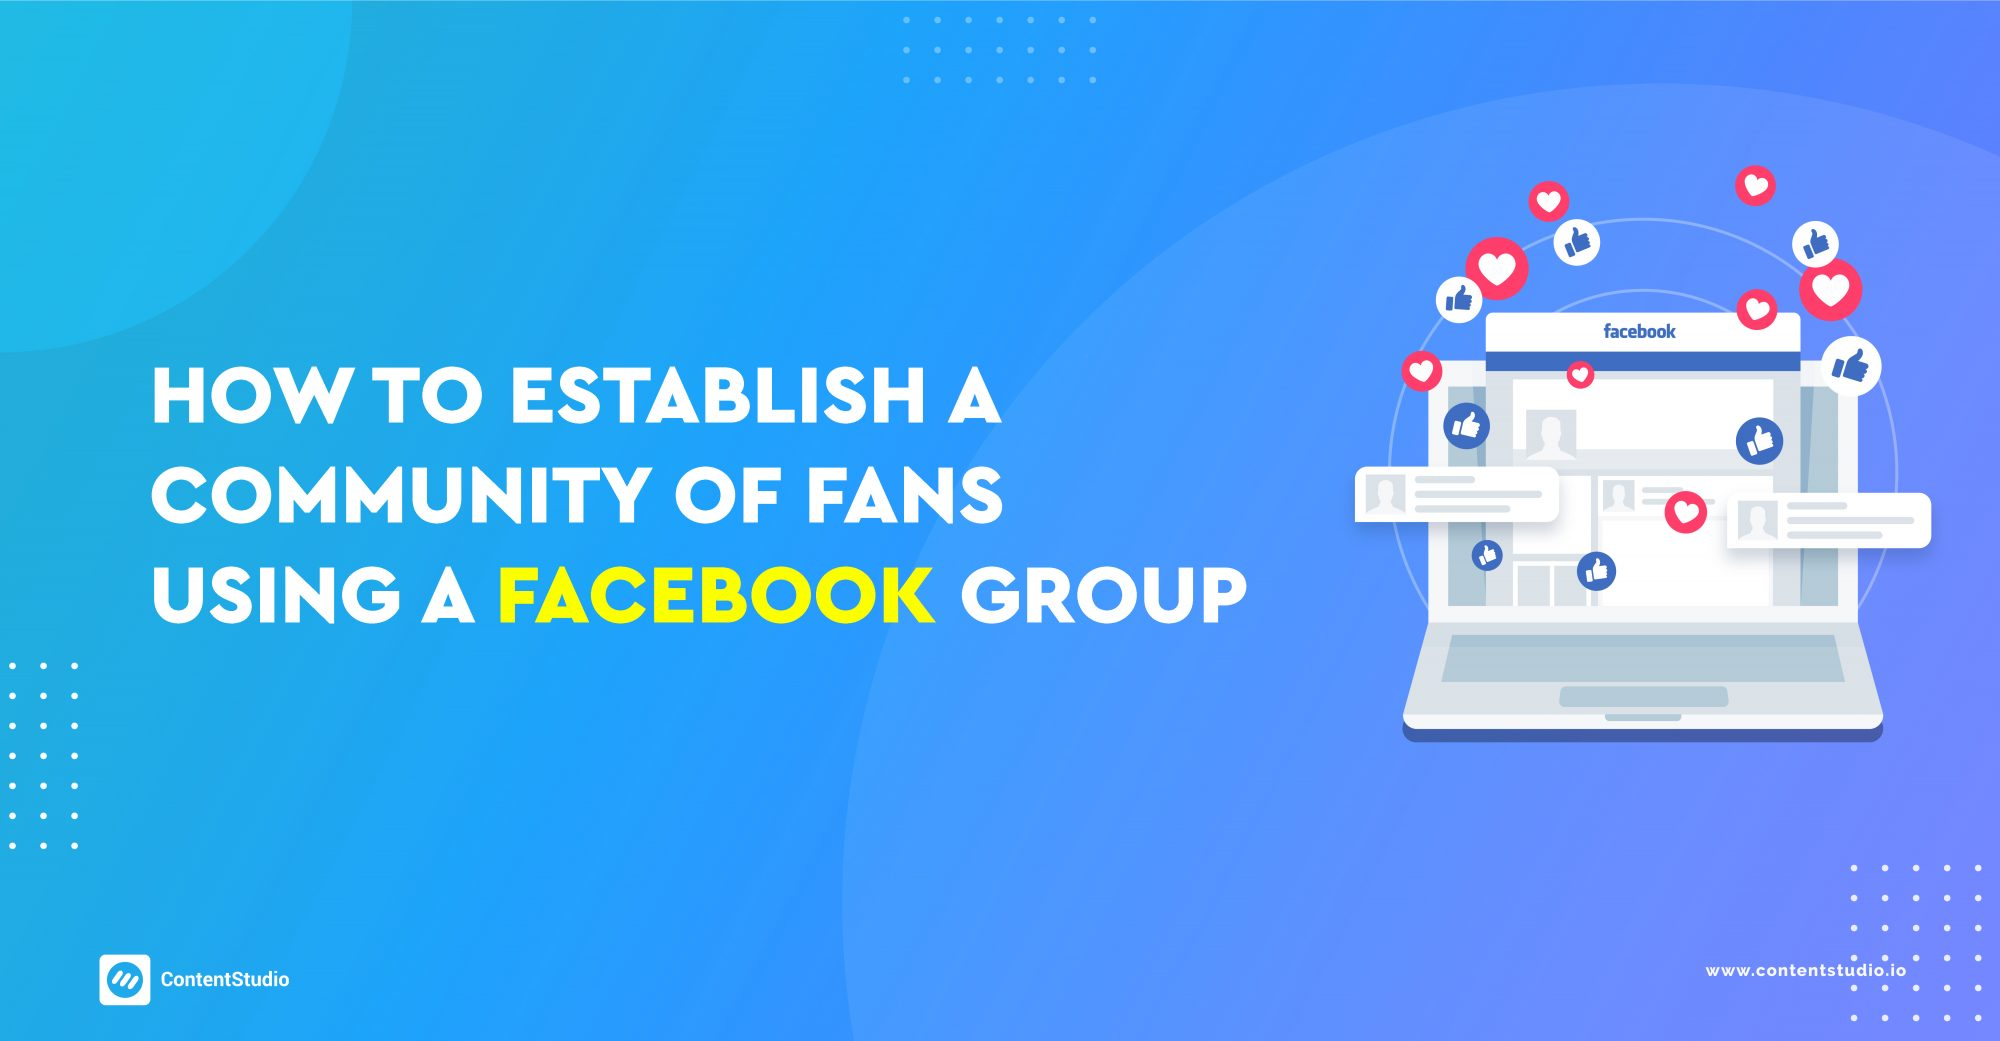 How to Establish a Community of Fans Using a Facebook Group